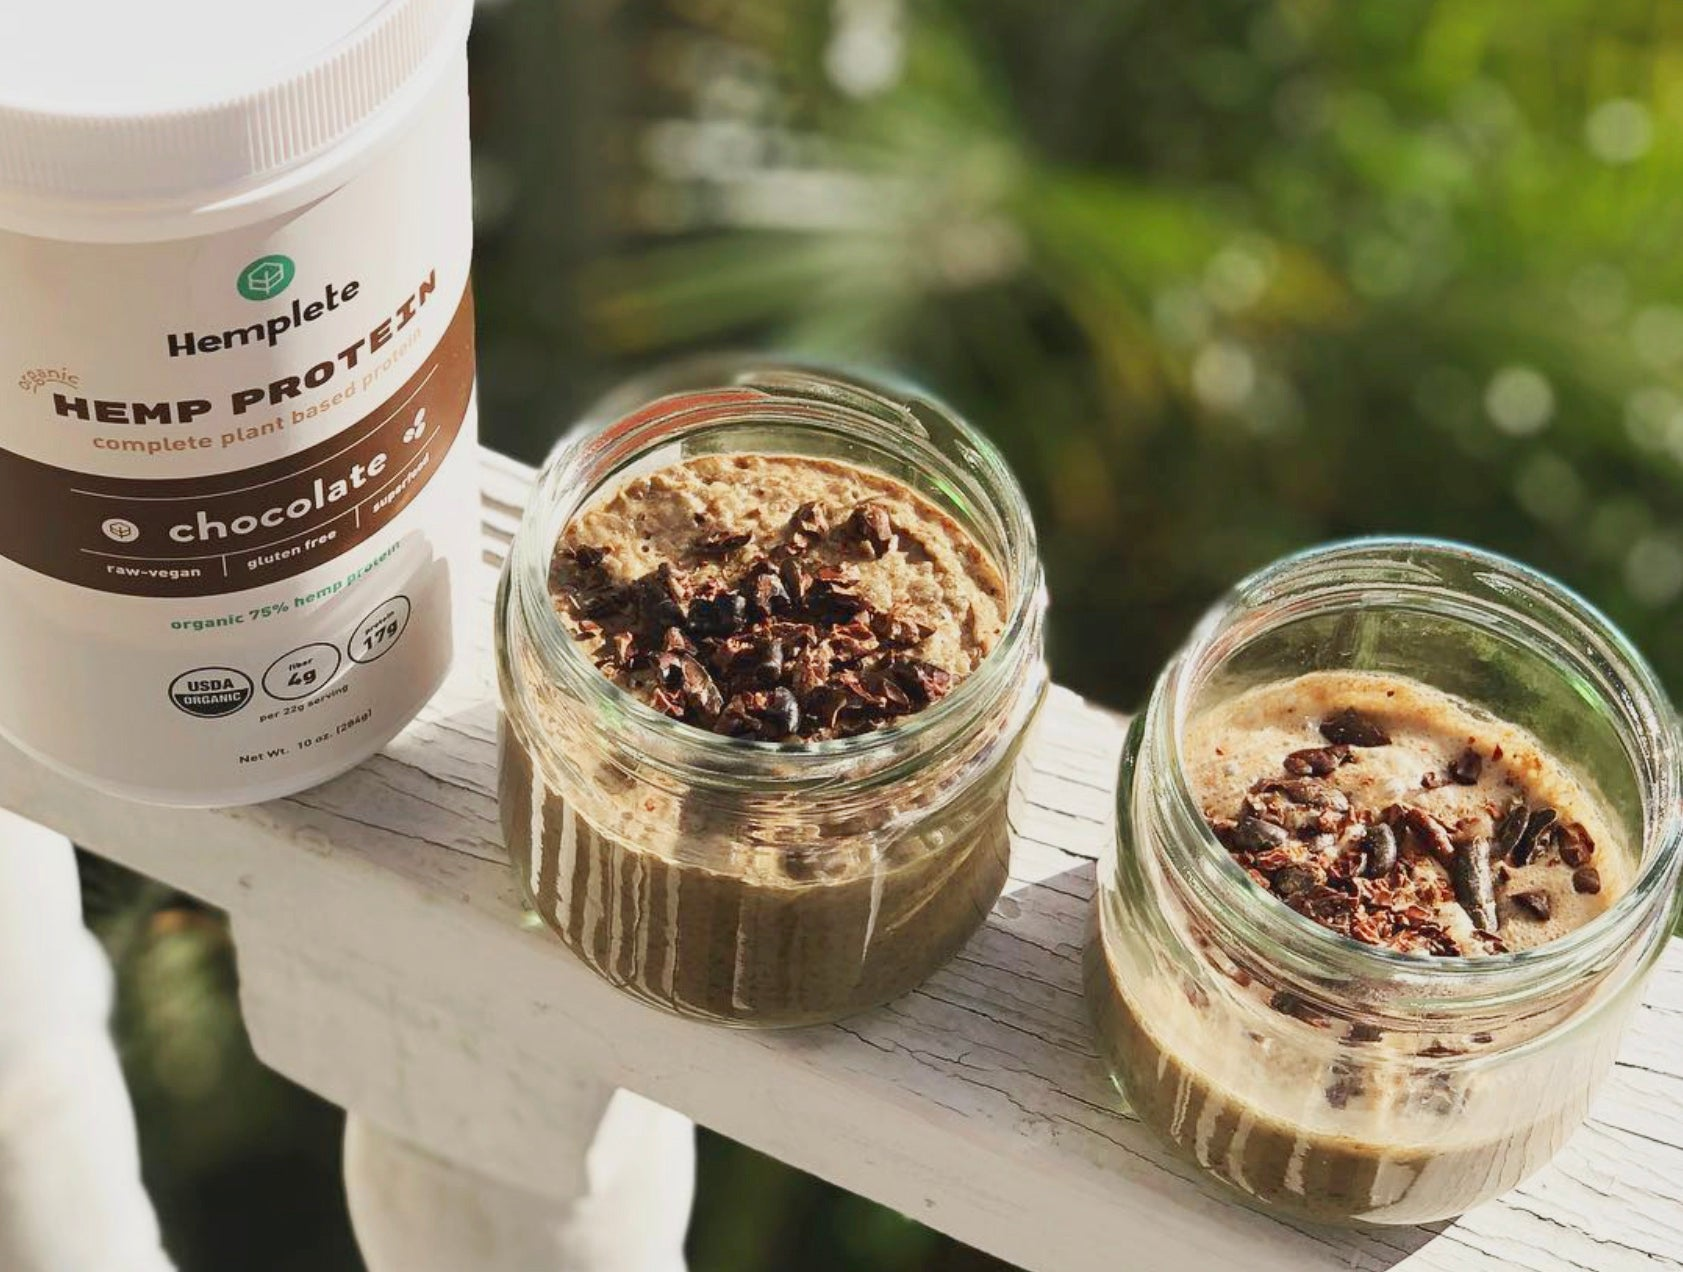 Hemp protein powder and smoothies on display